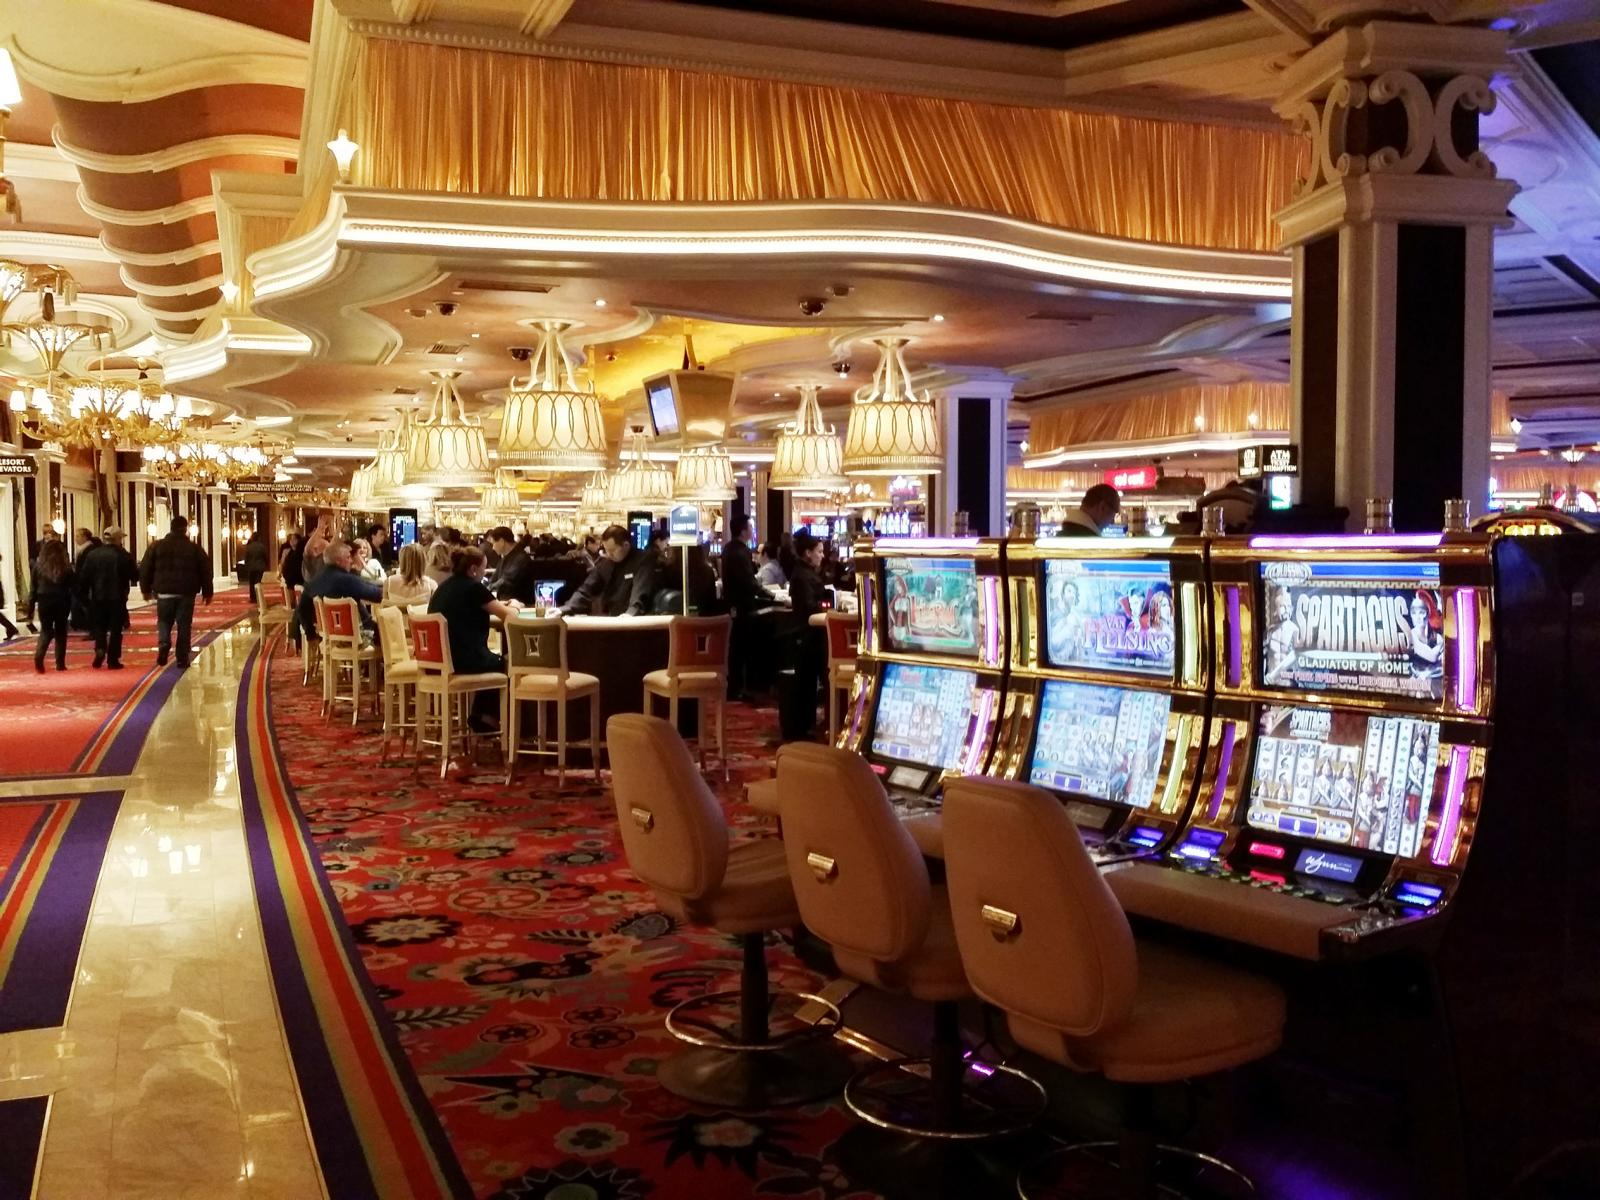 Las Vegas strip hotels Chance automaten